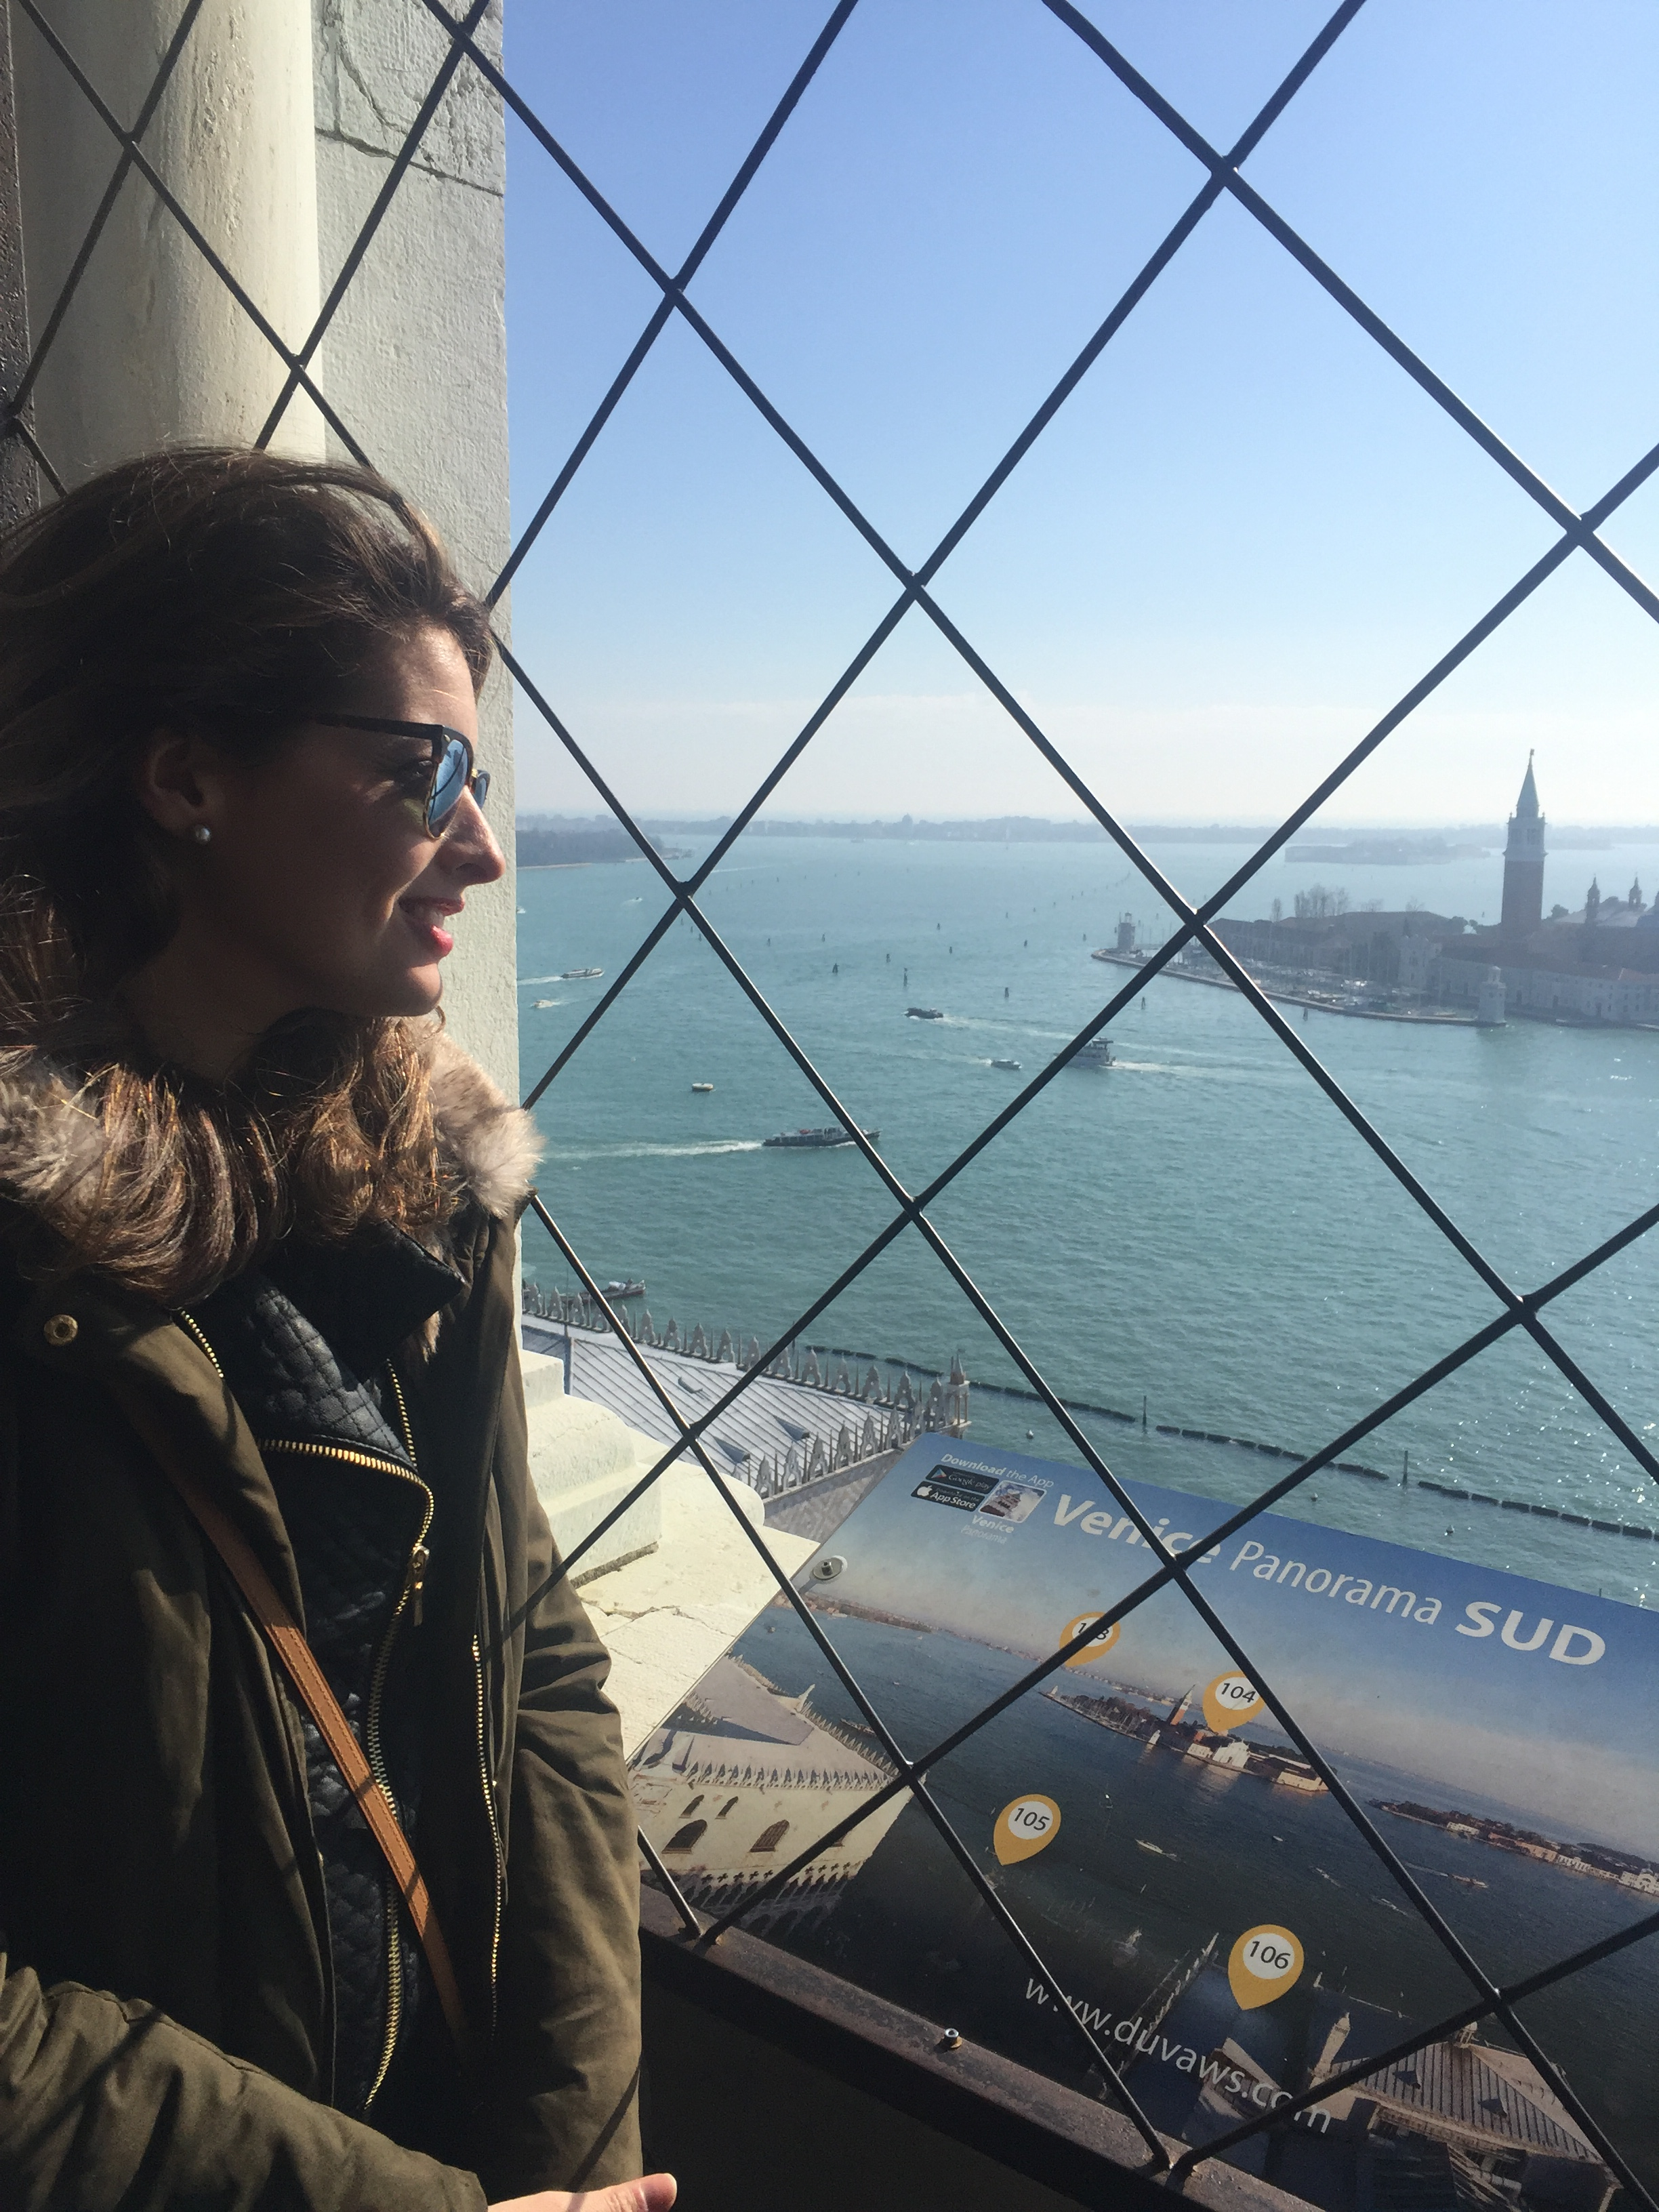 Happy travels from the top of the Campanile di San Marco